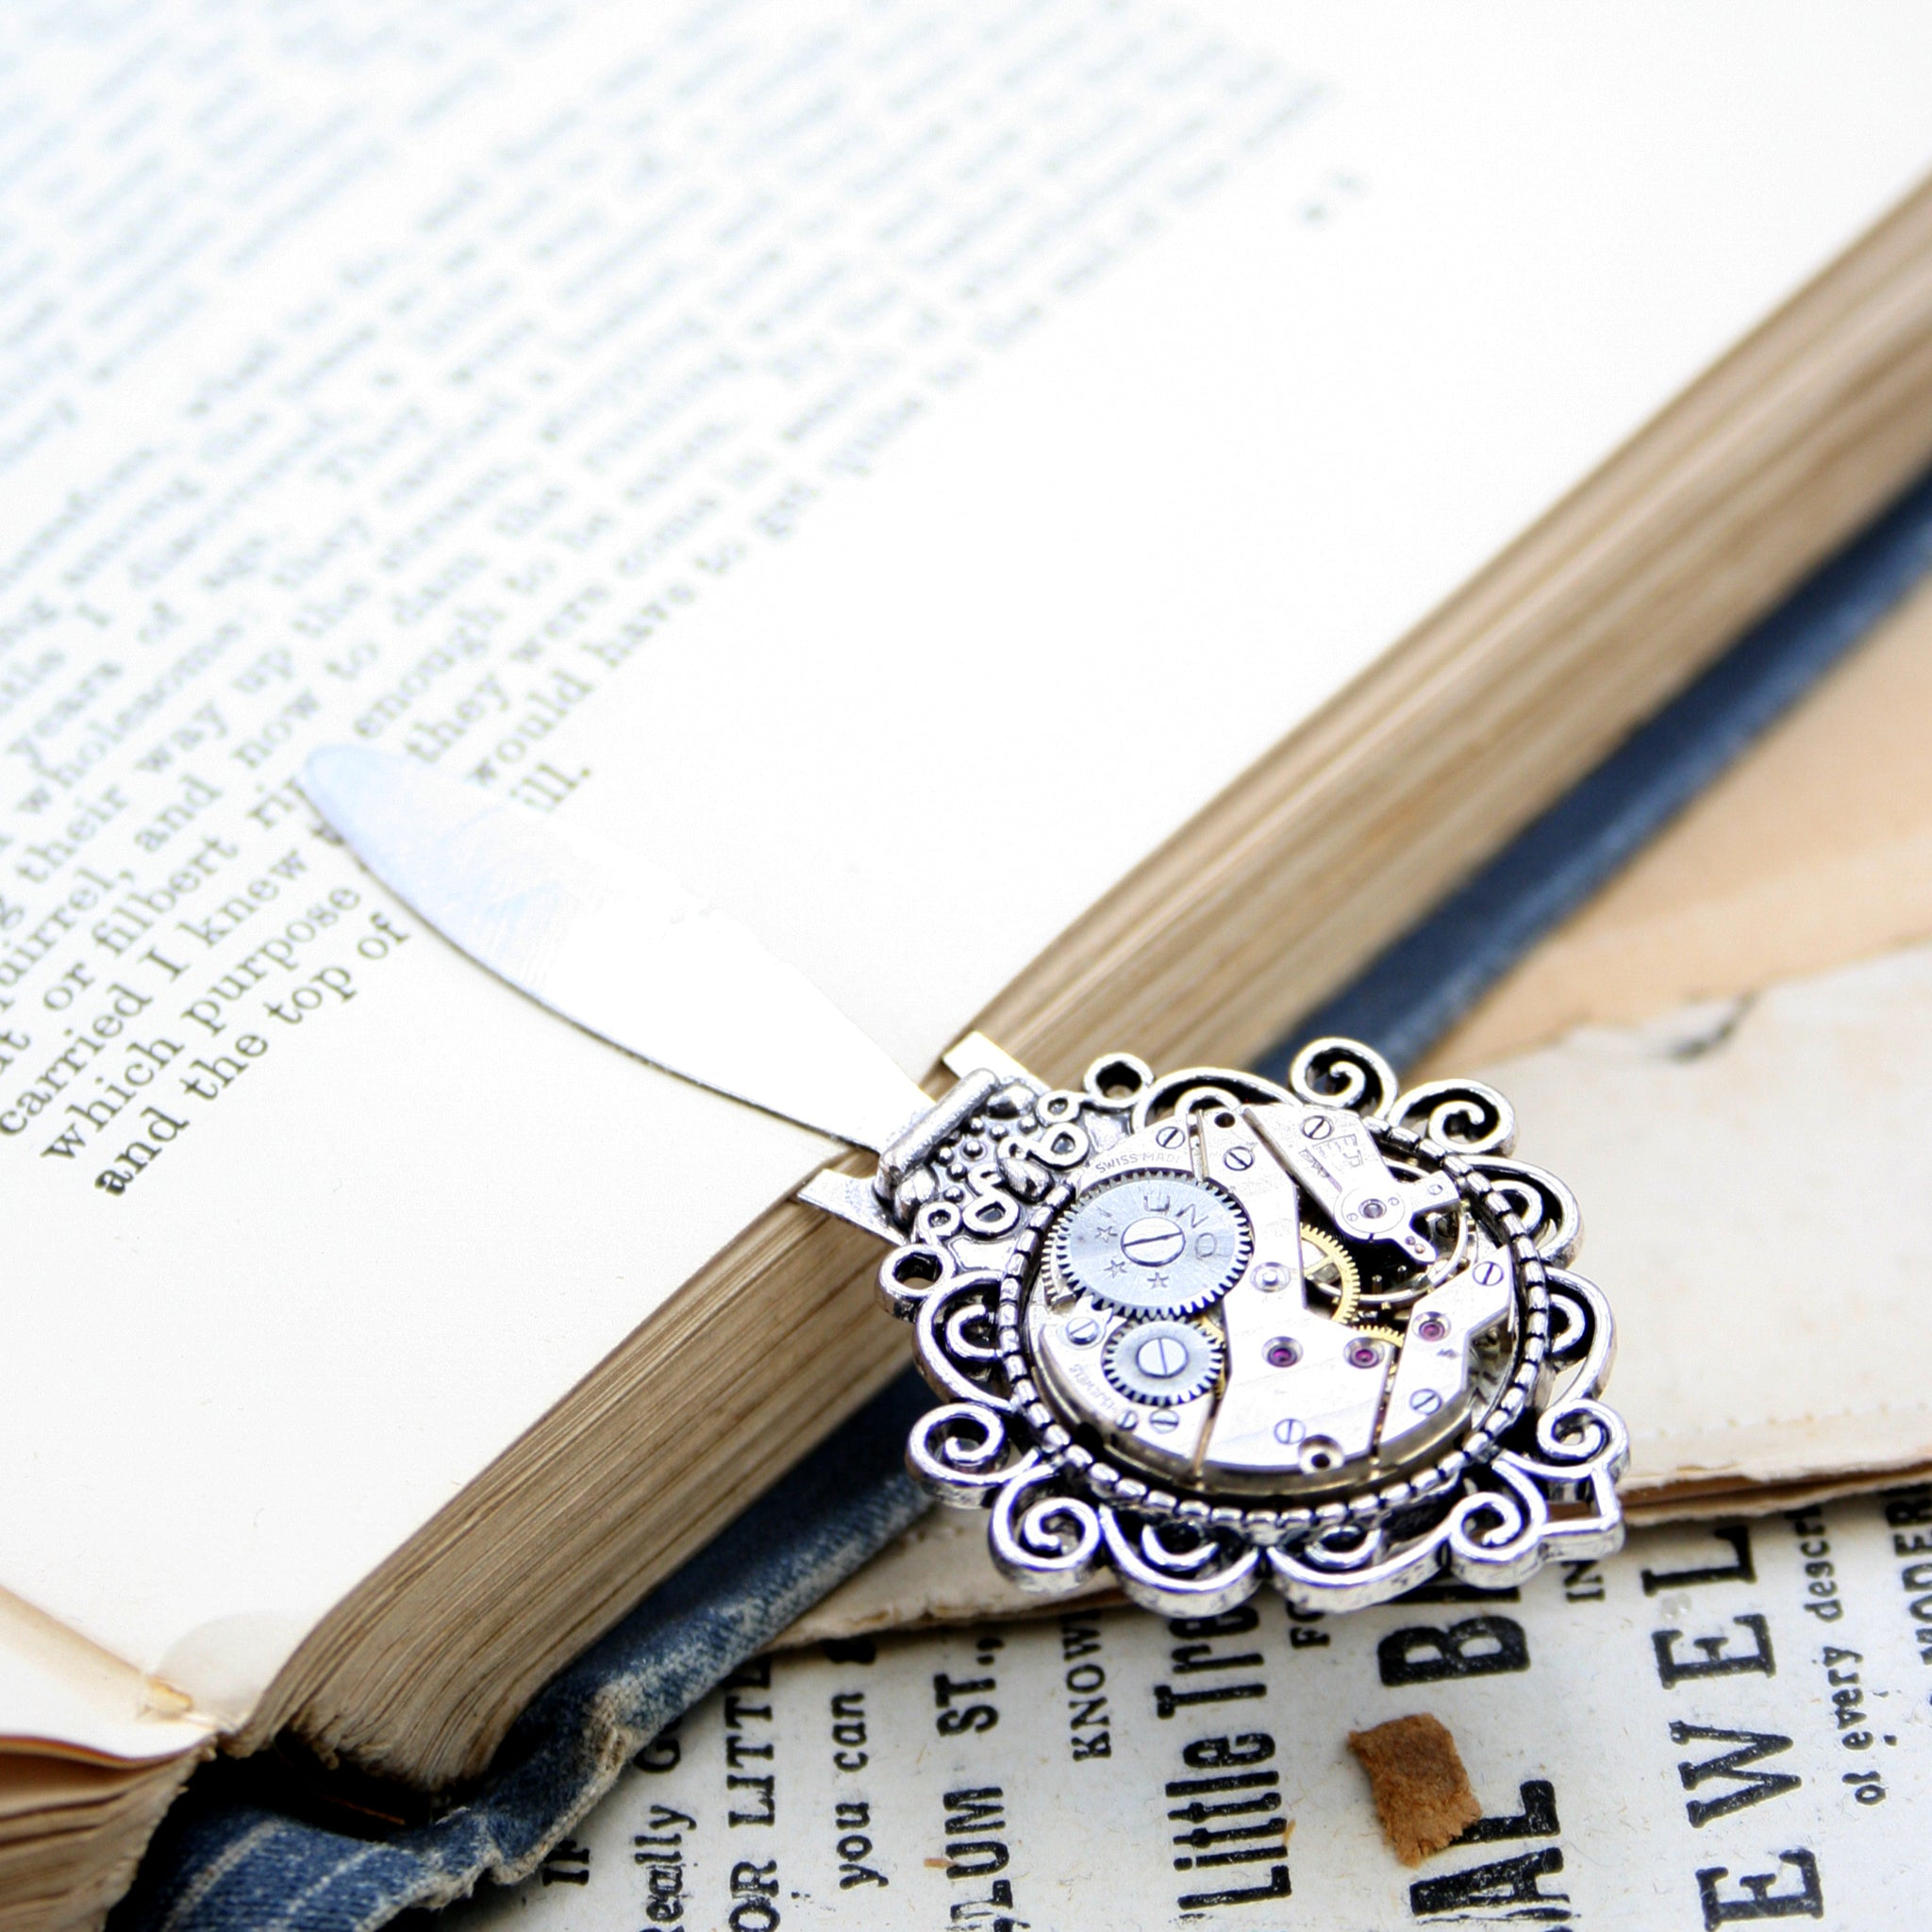 steampunk bookmark made of metal and antique watch movement